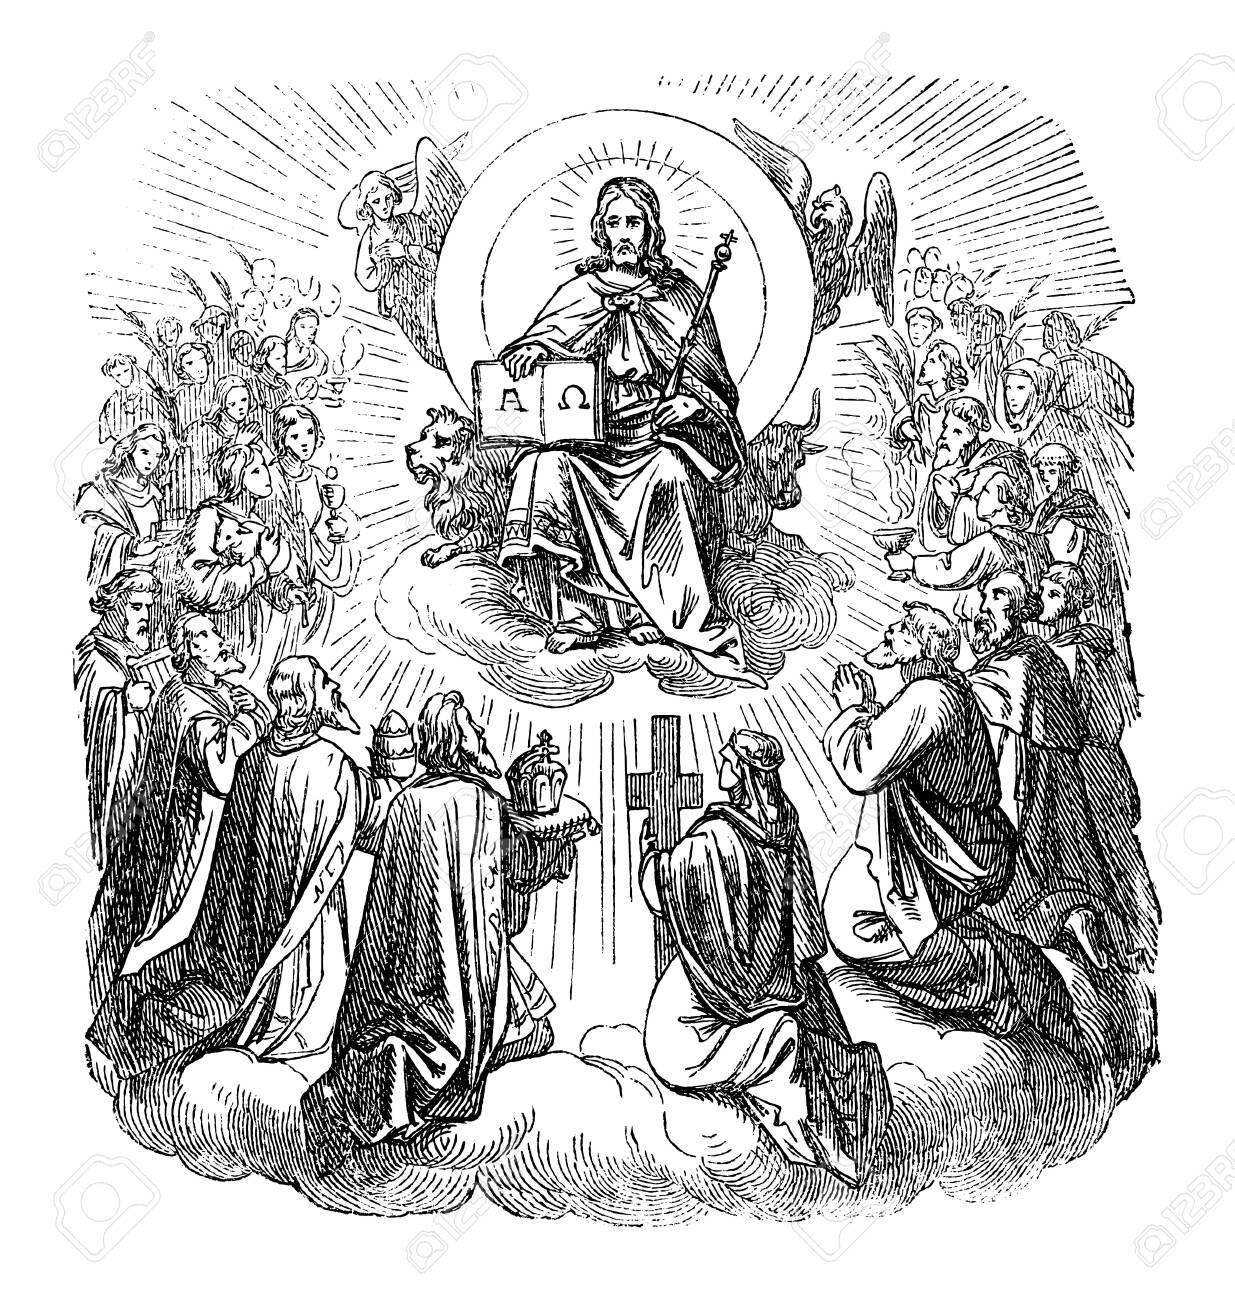 Antique vintage biblical religious engraving or drawing of Jesus Christ sitting as king on throne in heaven surrounded by apostles and believers.Bible, New Testament,Biblische Geschichte , Germany 1859. - 138430782